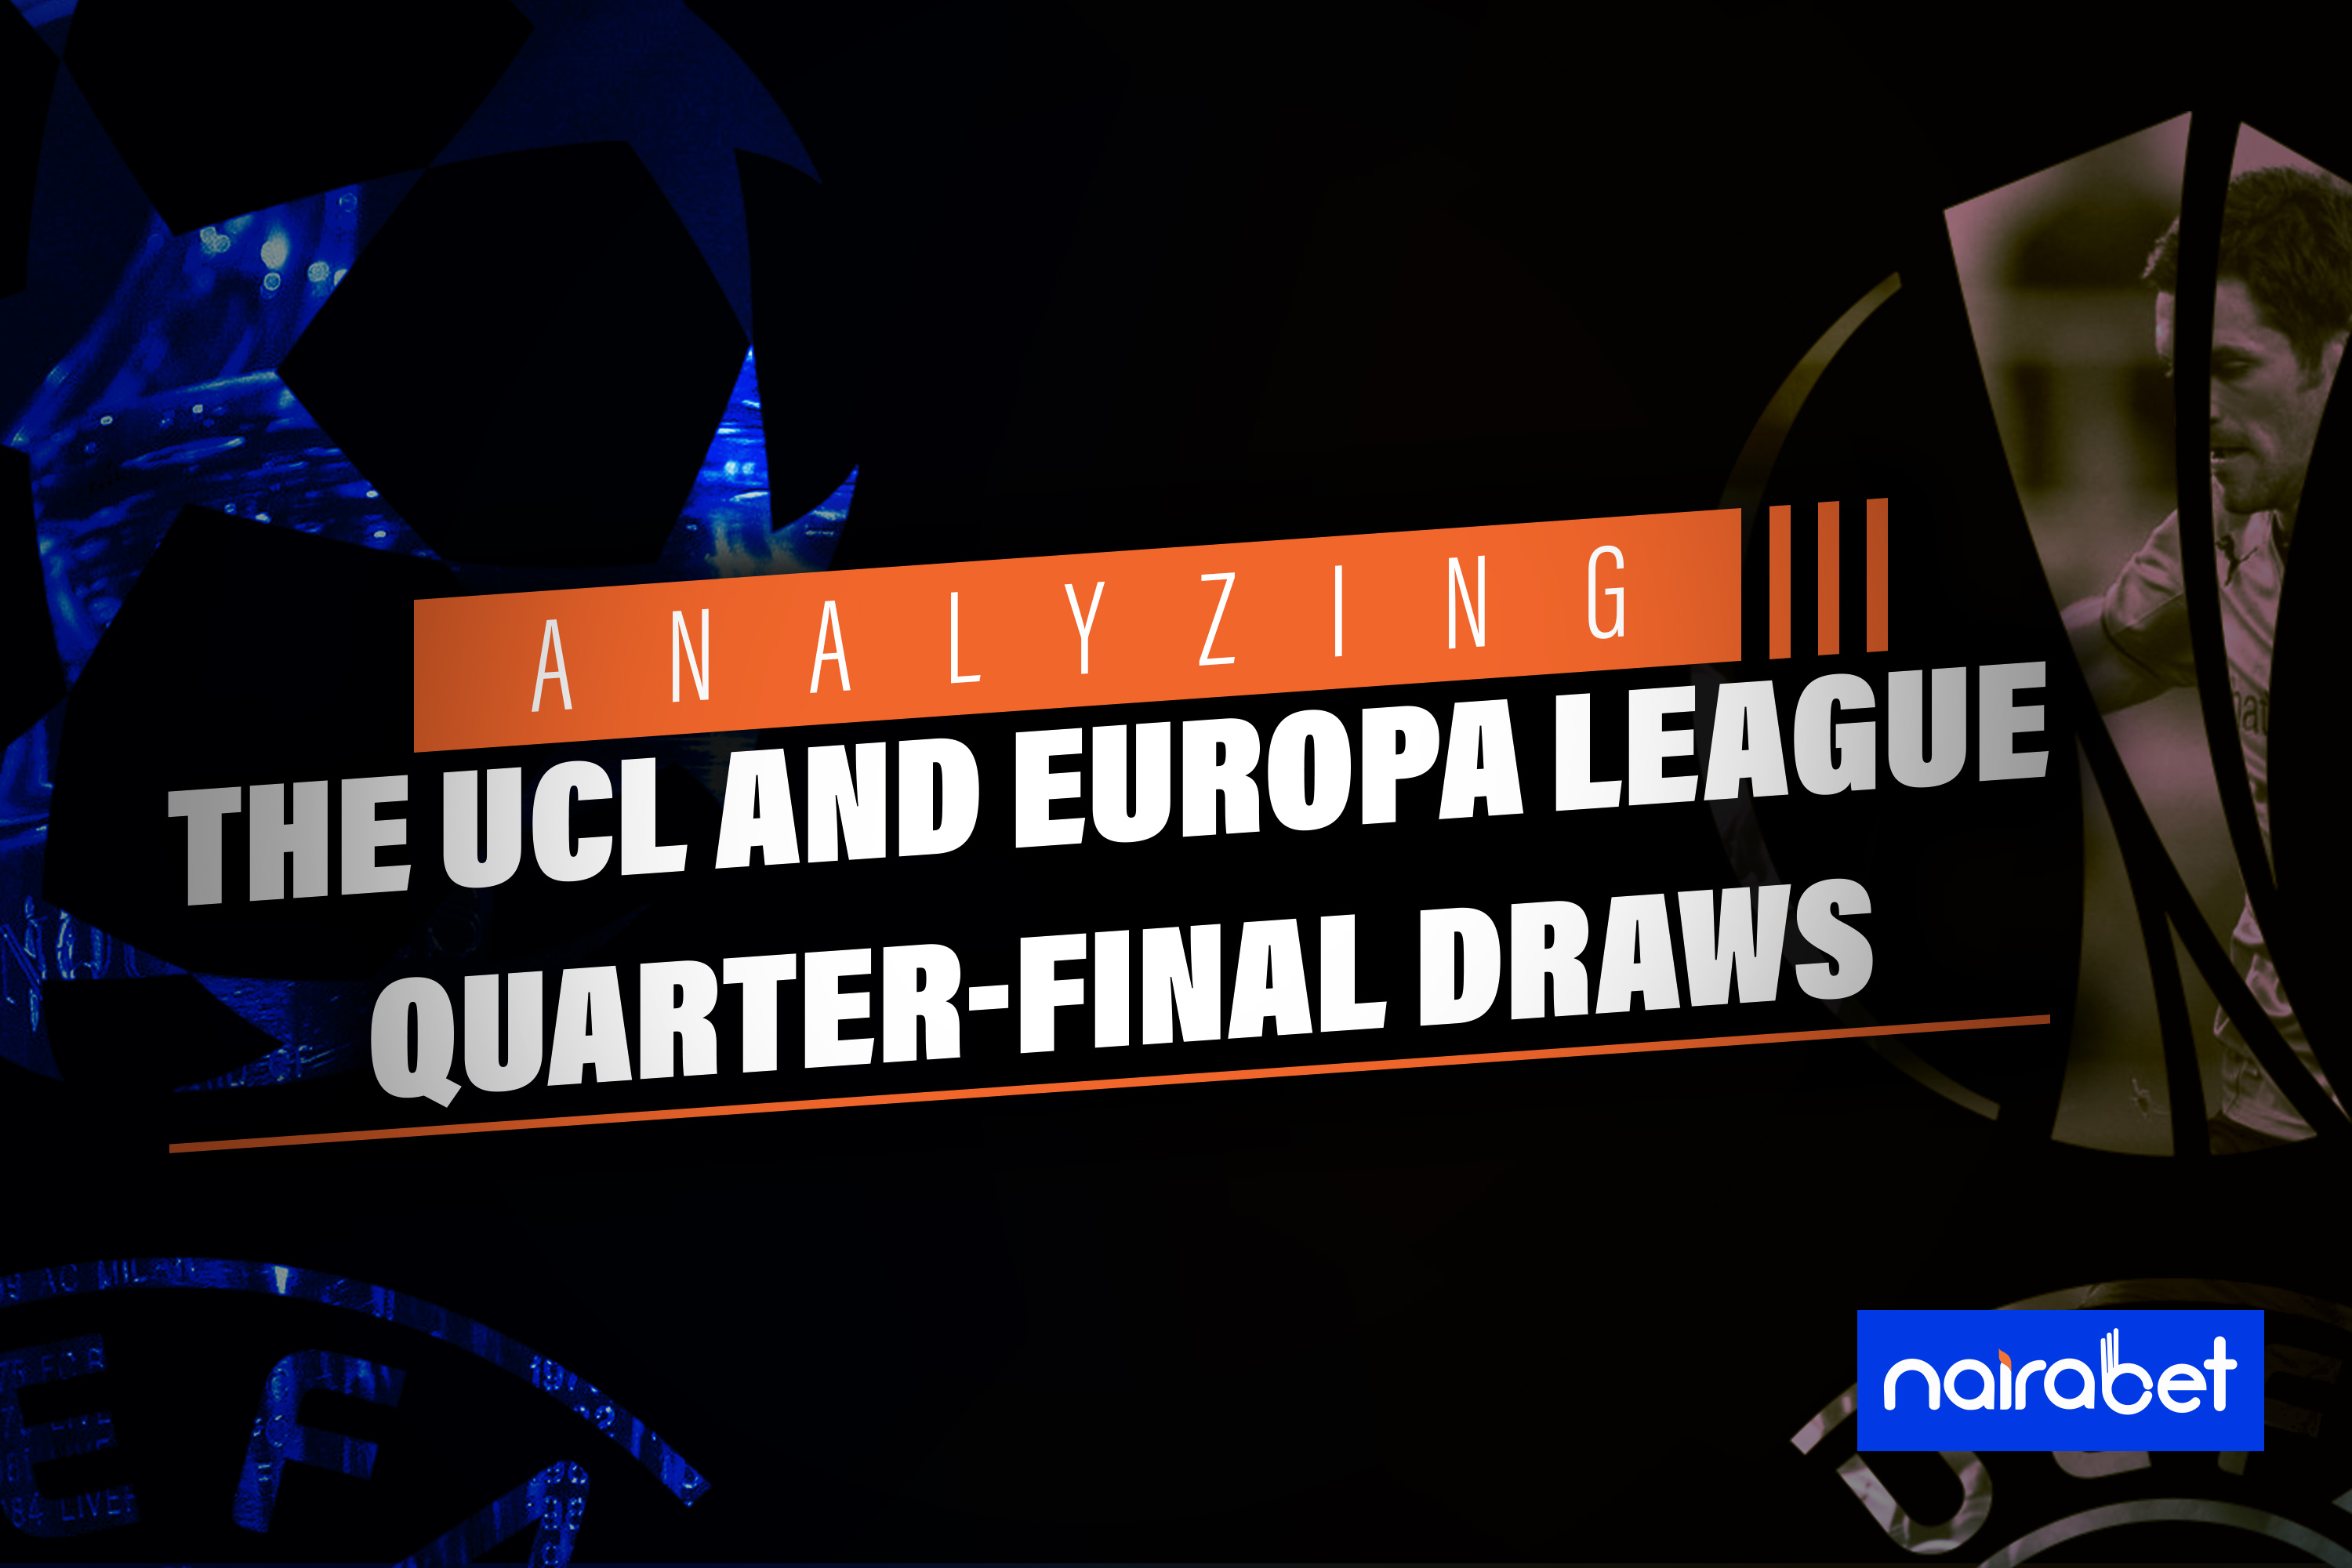 ucl and europa leage quarter-final analysis